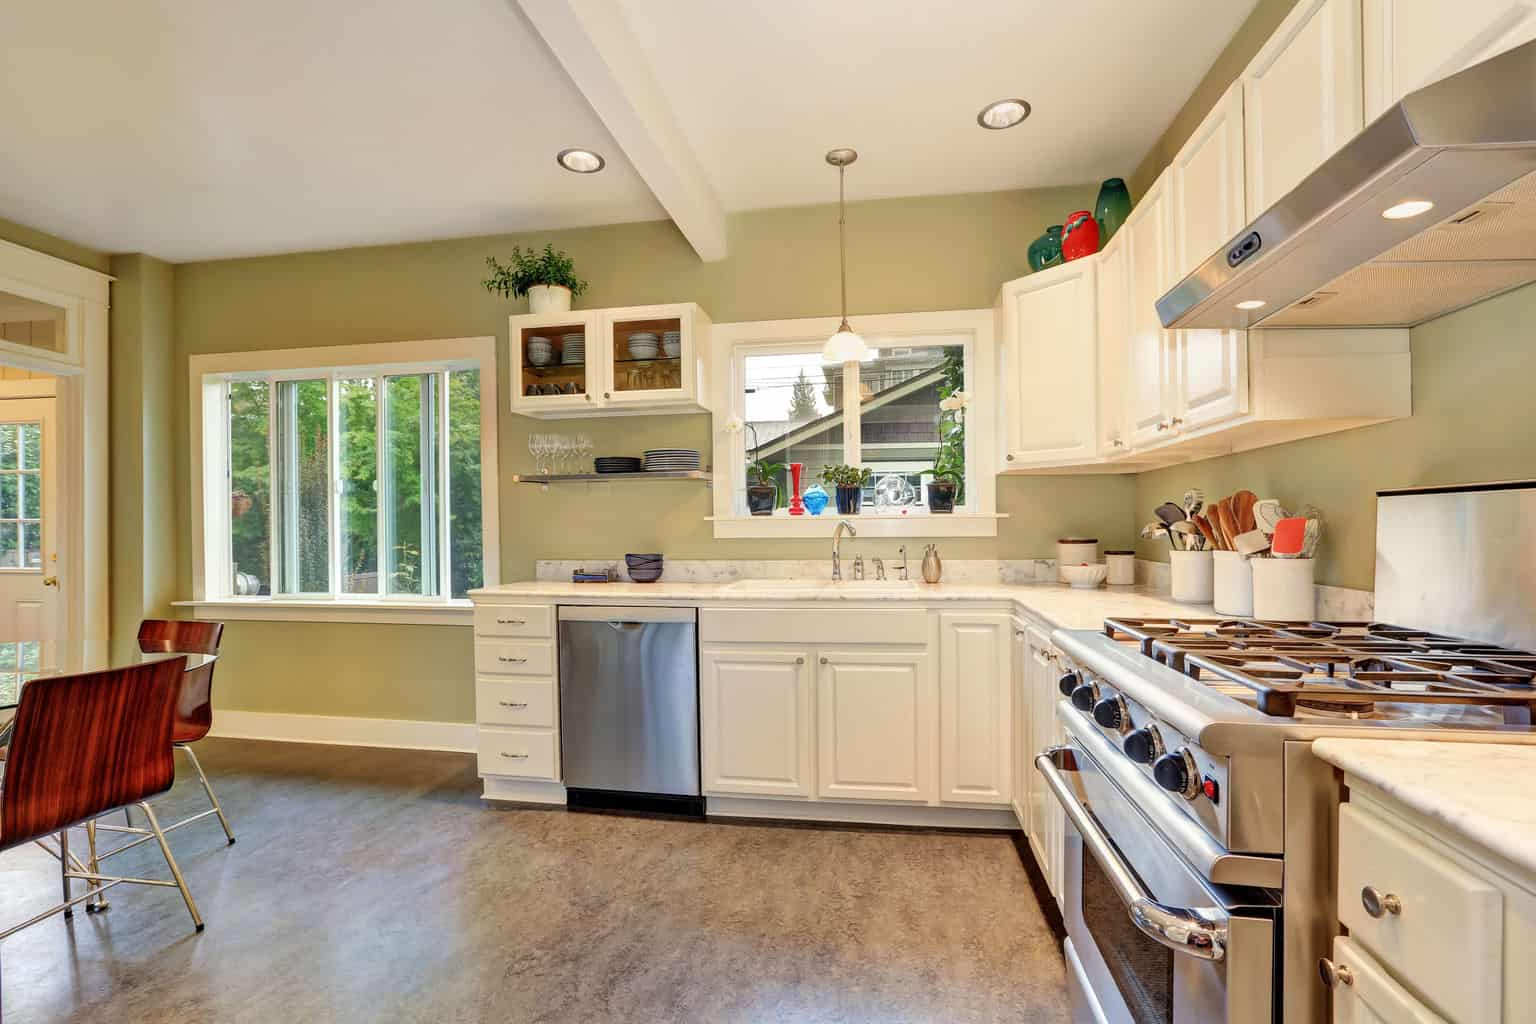 kitchen linoleum flooring linoleum kitchen flooring Making repairs in your linoleum is easy in comparison to vinyl or hardwood simply fill any gashes with a mix of wood glue and saw dust and paint to match